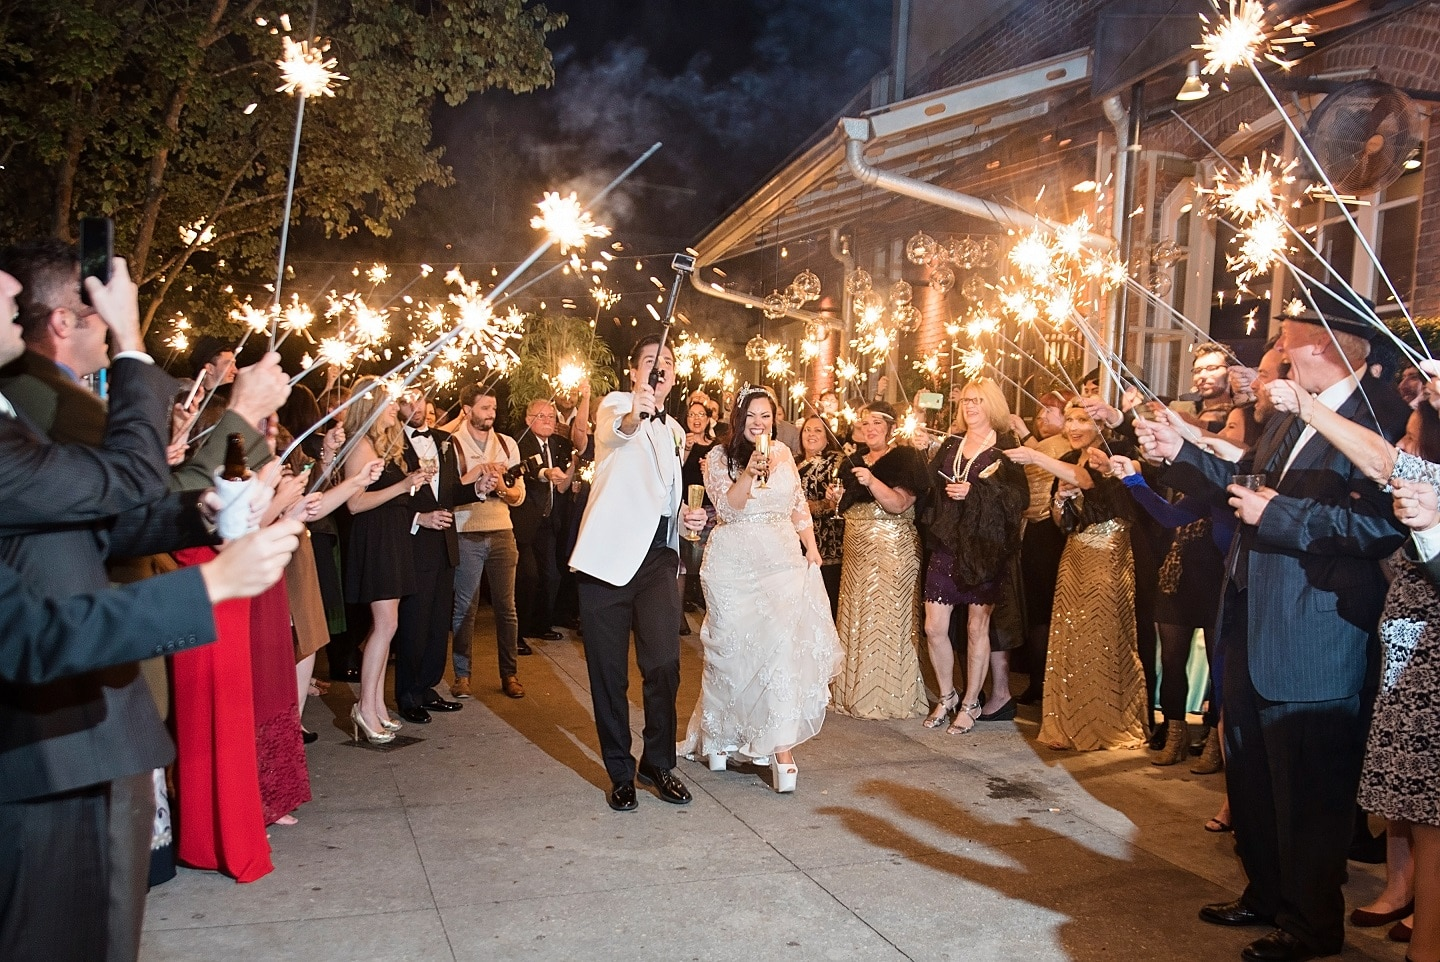 A sparkler wedding exit at Generations Hall.